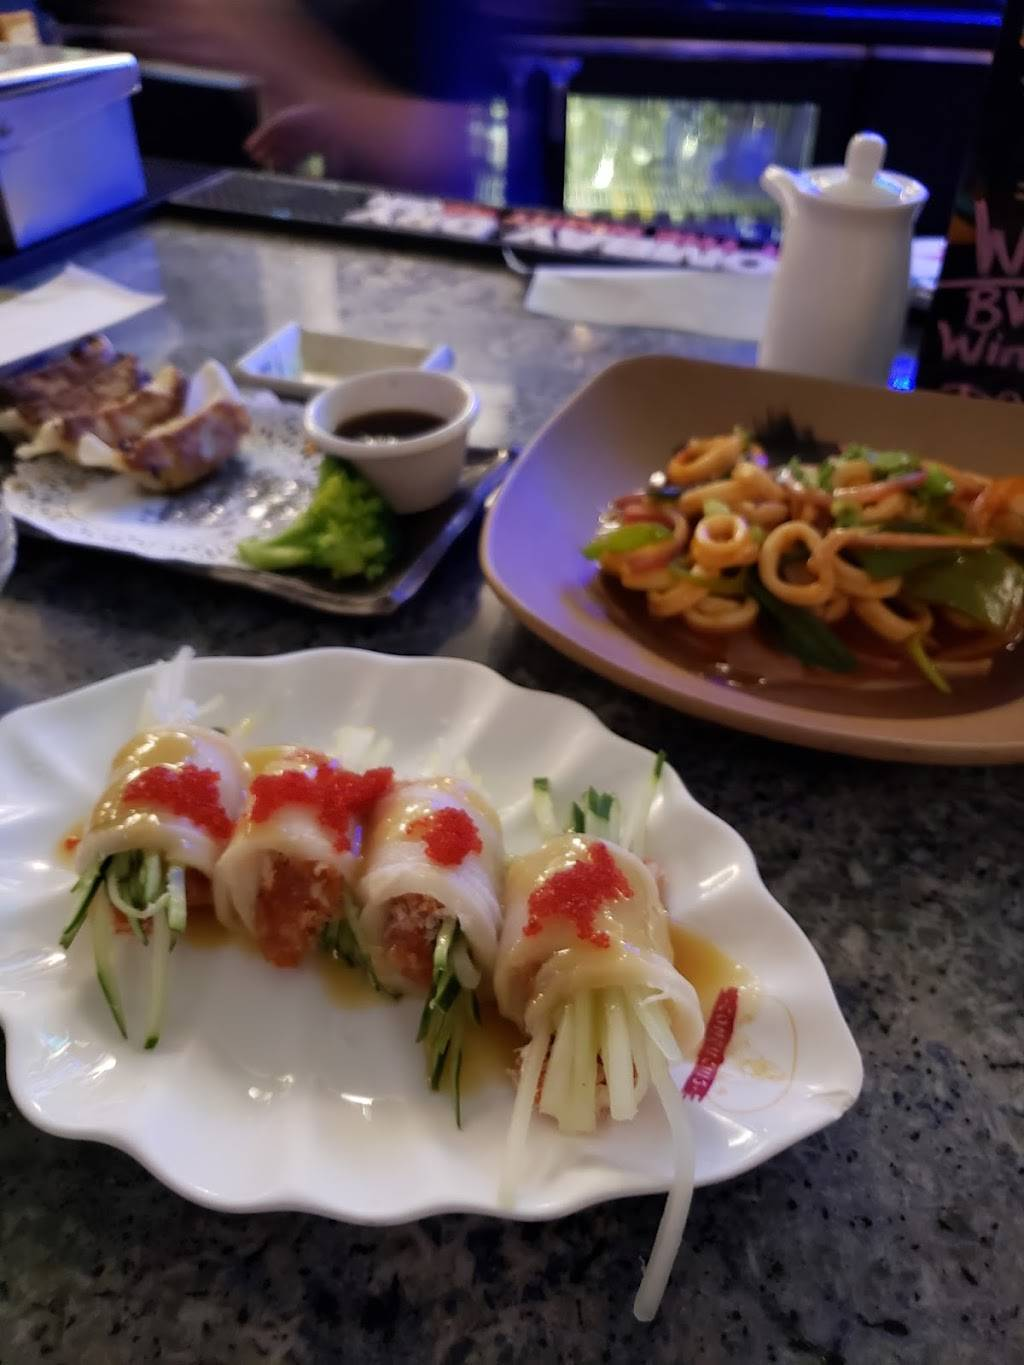 Robongi | restaurant | 4800 Ave at Port Imperial, Weehawken, NJ 07086, USA | 2015581818 OR +1 201-558-1818